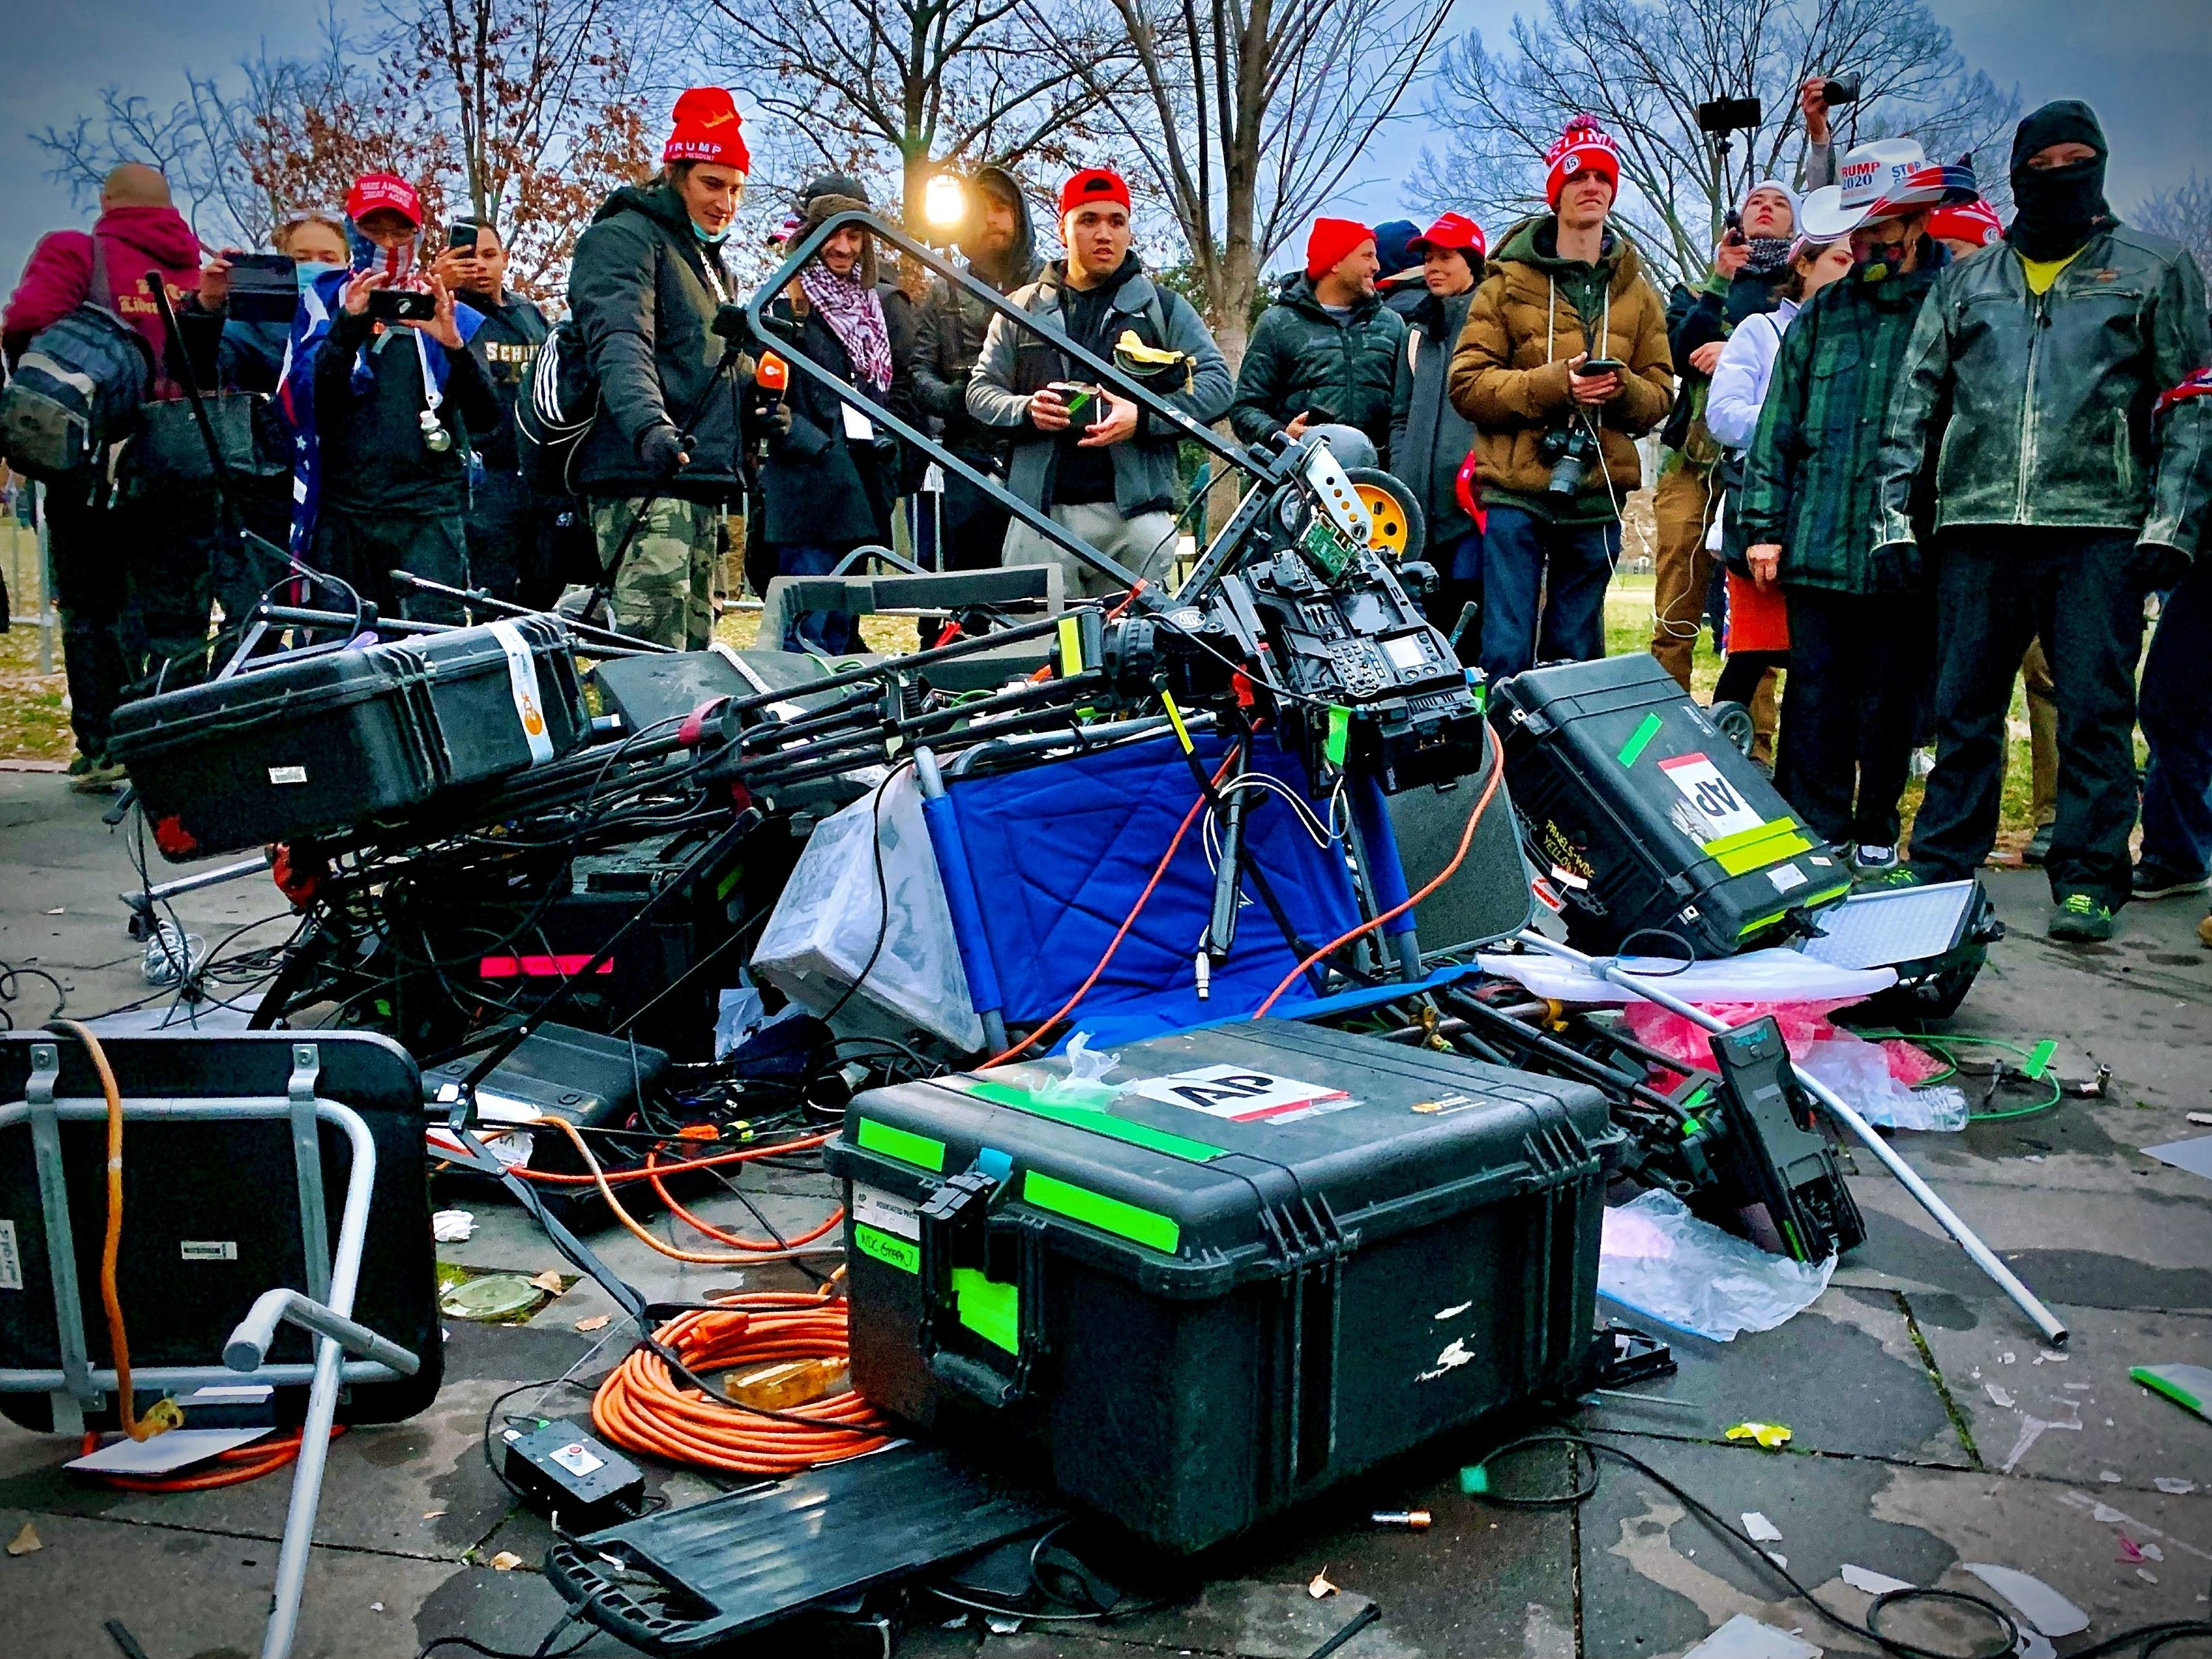 Supporters of US President Donald Trump stand next to media equipment they destroyed during their riot